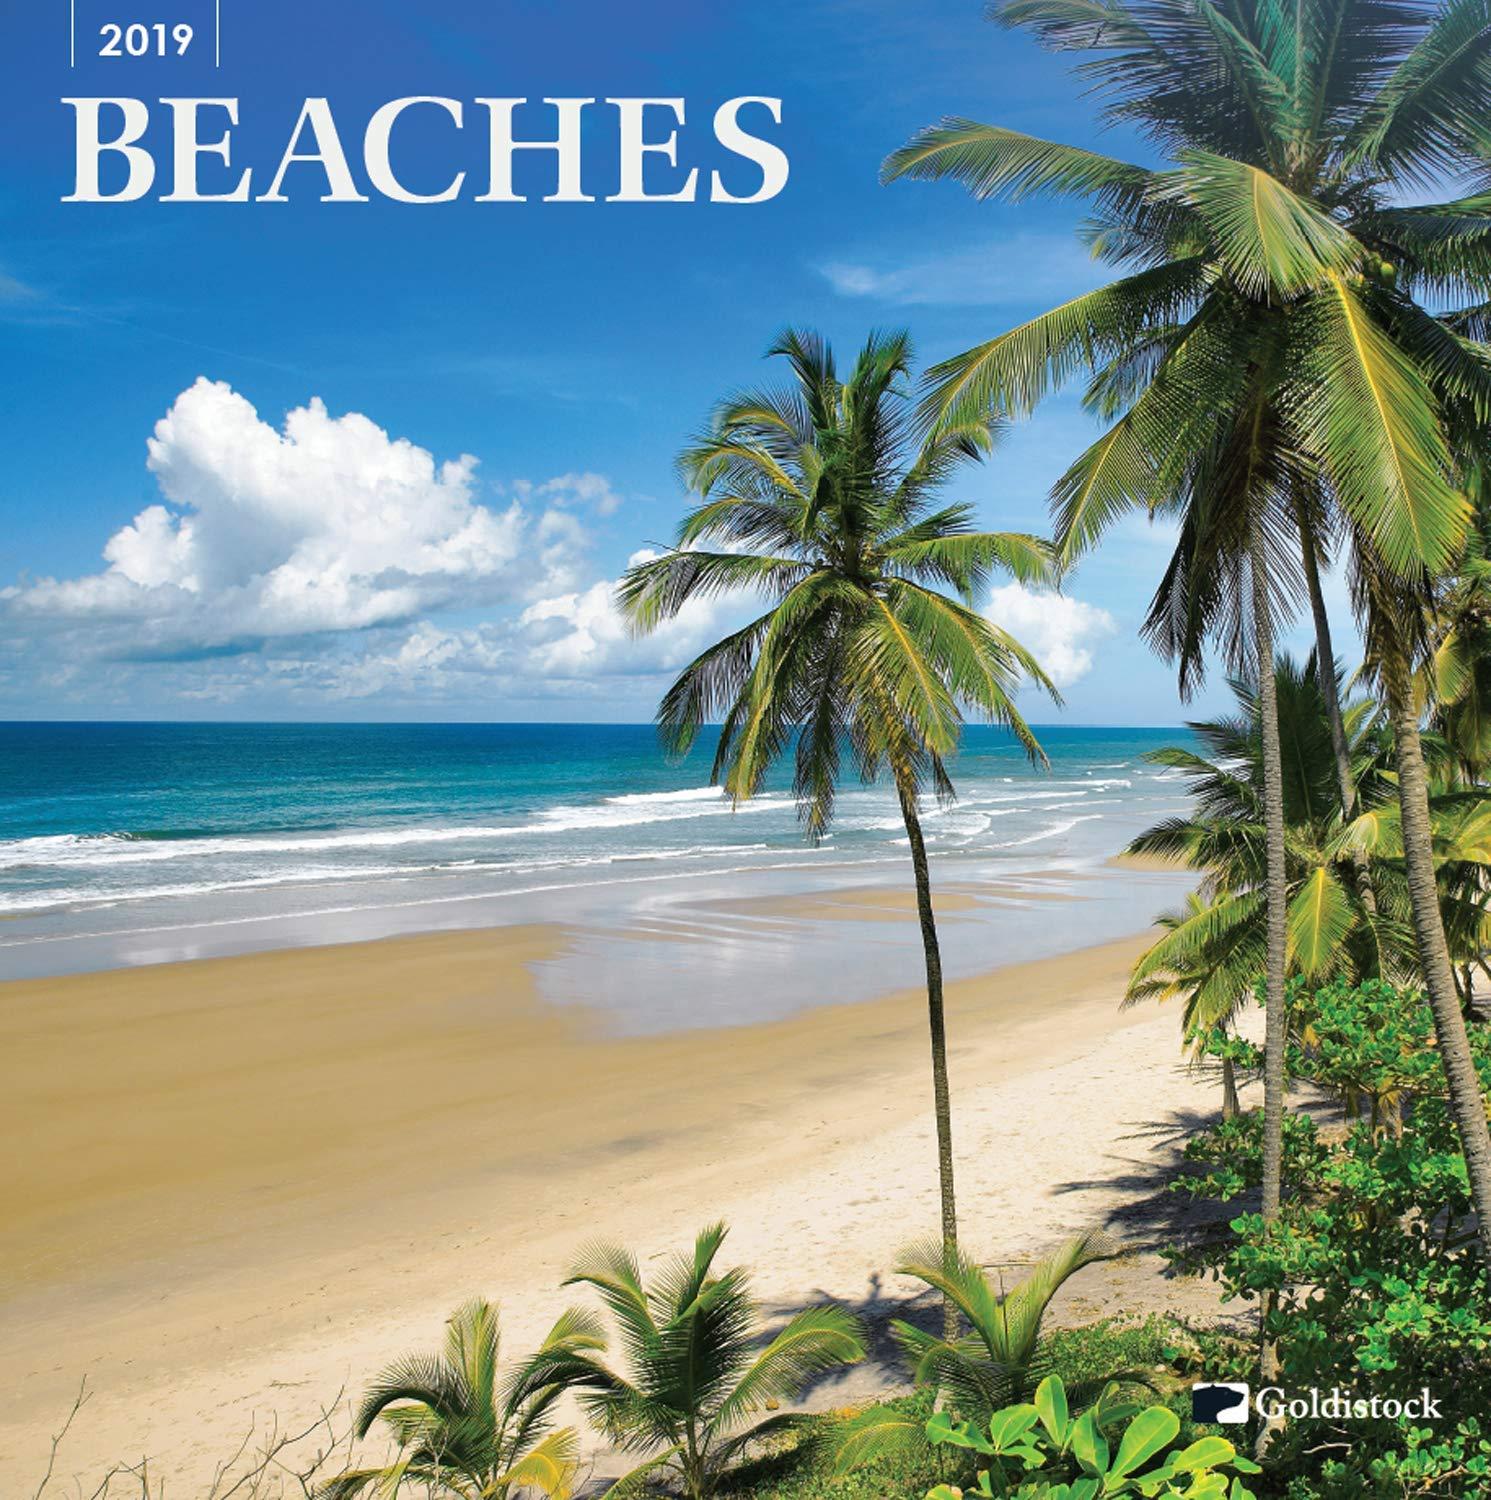 Goldistock''Beaches'' Eco-Friendly 2019 Large Wall Calendar - 12'' x 24'' (Open) - Visit Paradise Anytime - Thick & Sturdy Paper